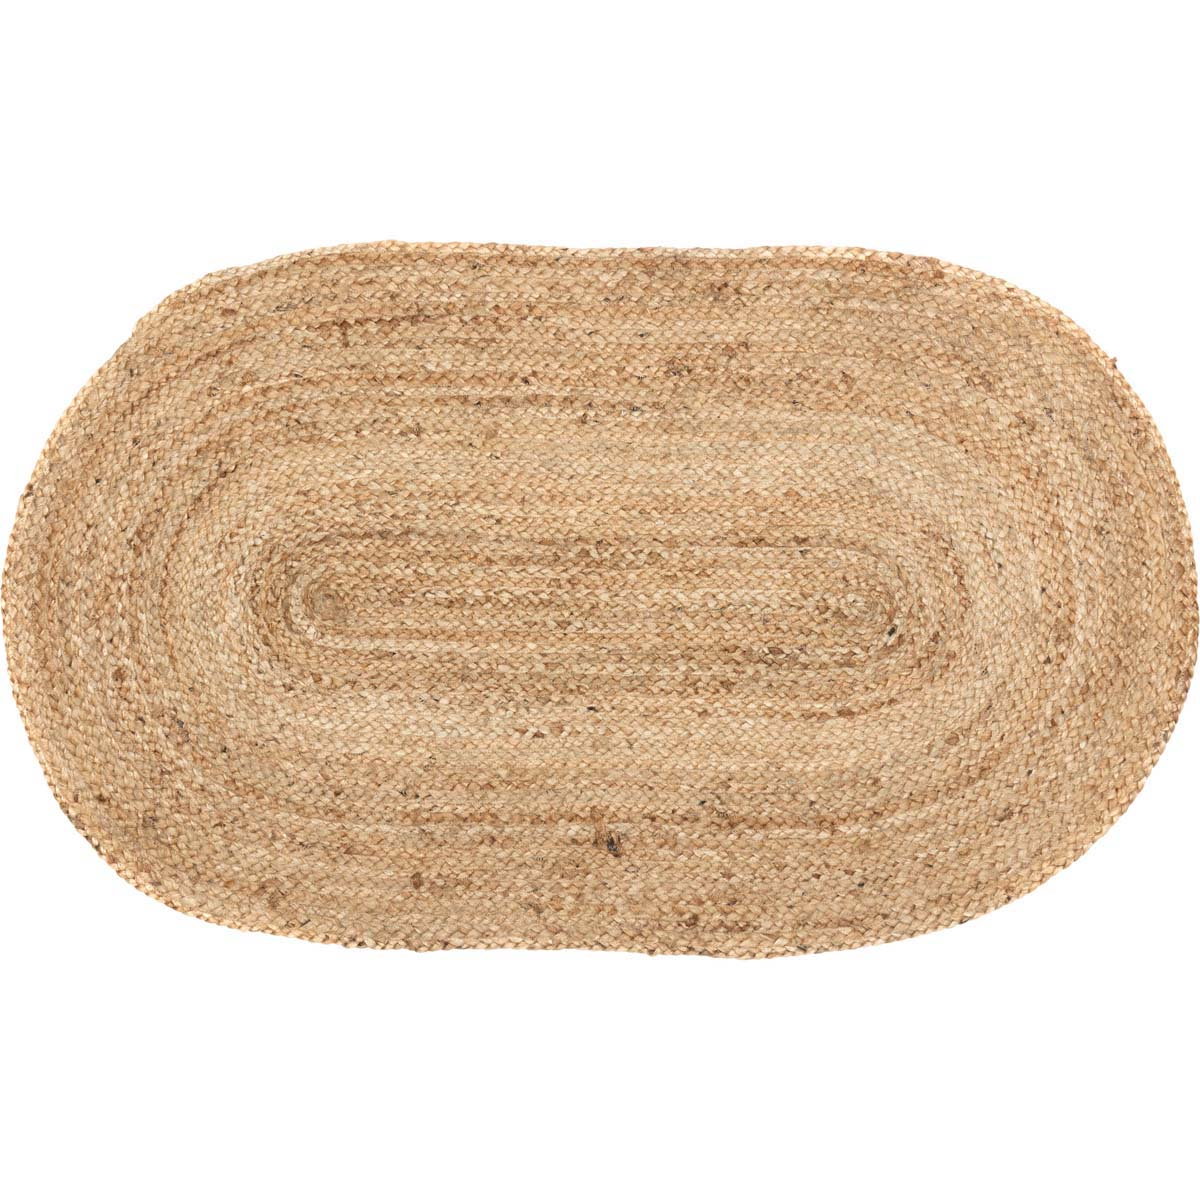 Natural Tan Modern Farmhouse Rustic Coastal Kitchen Flooring braided Jute Oval Accent Area Rug